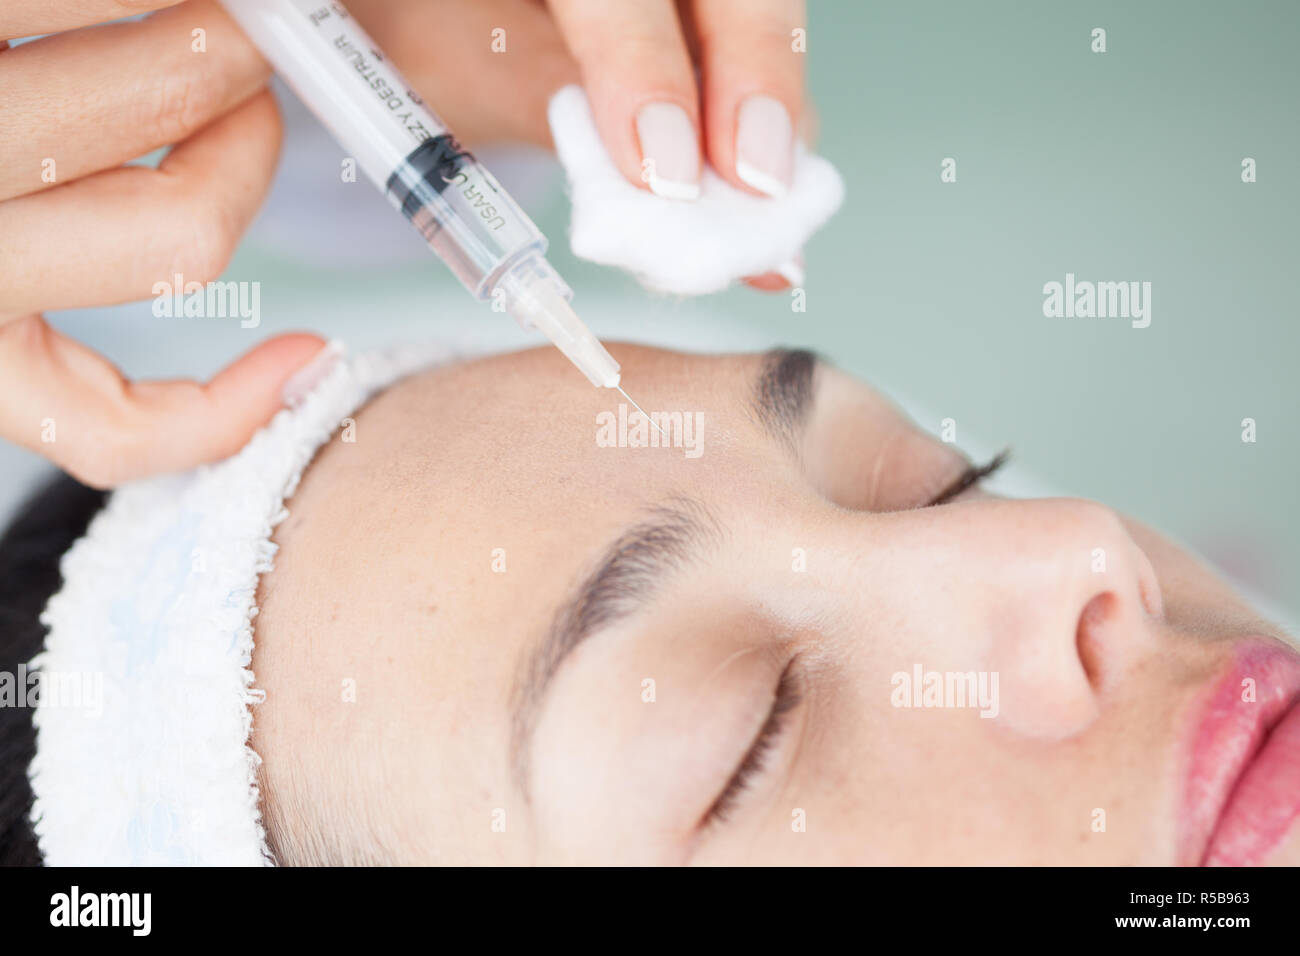 Doctor applying a facial treatment using a syringe Stock Photo